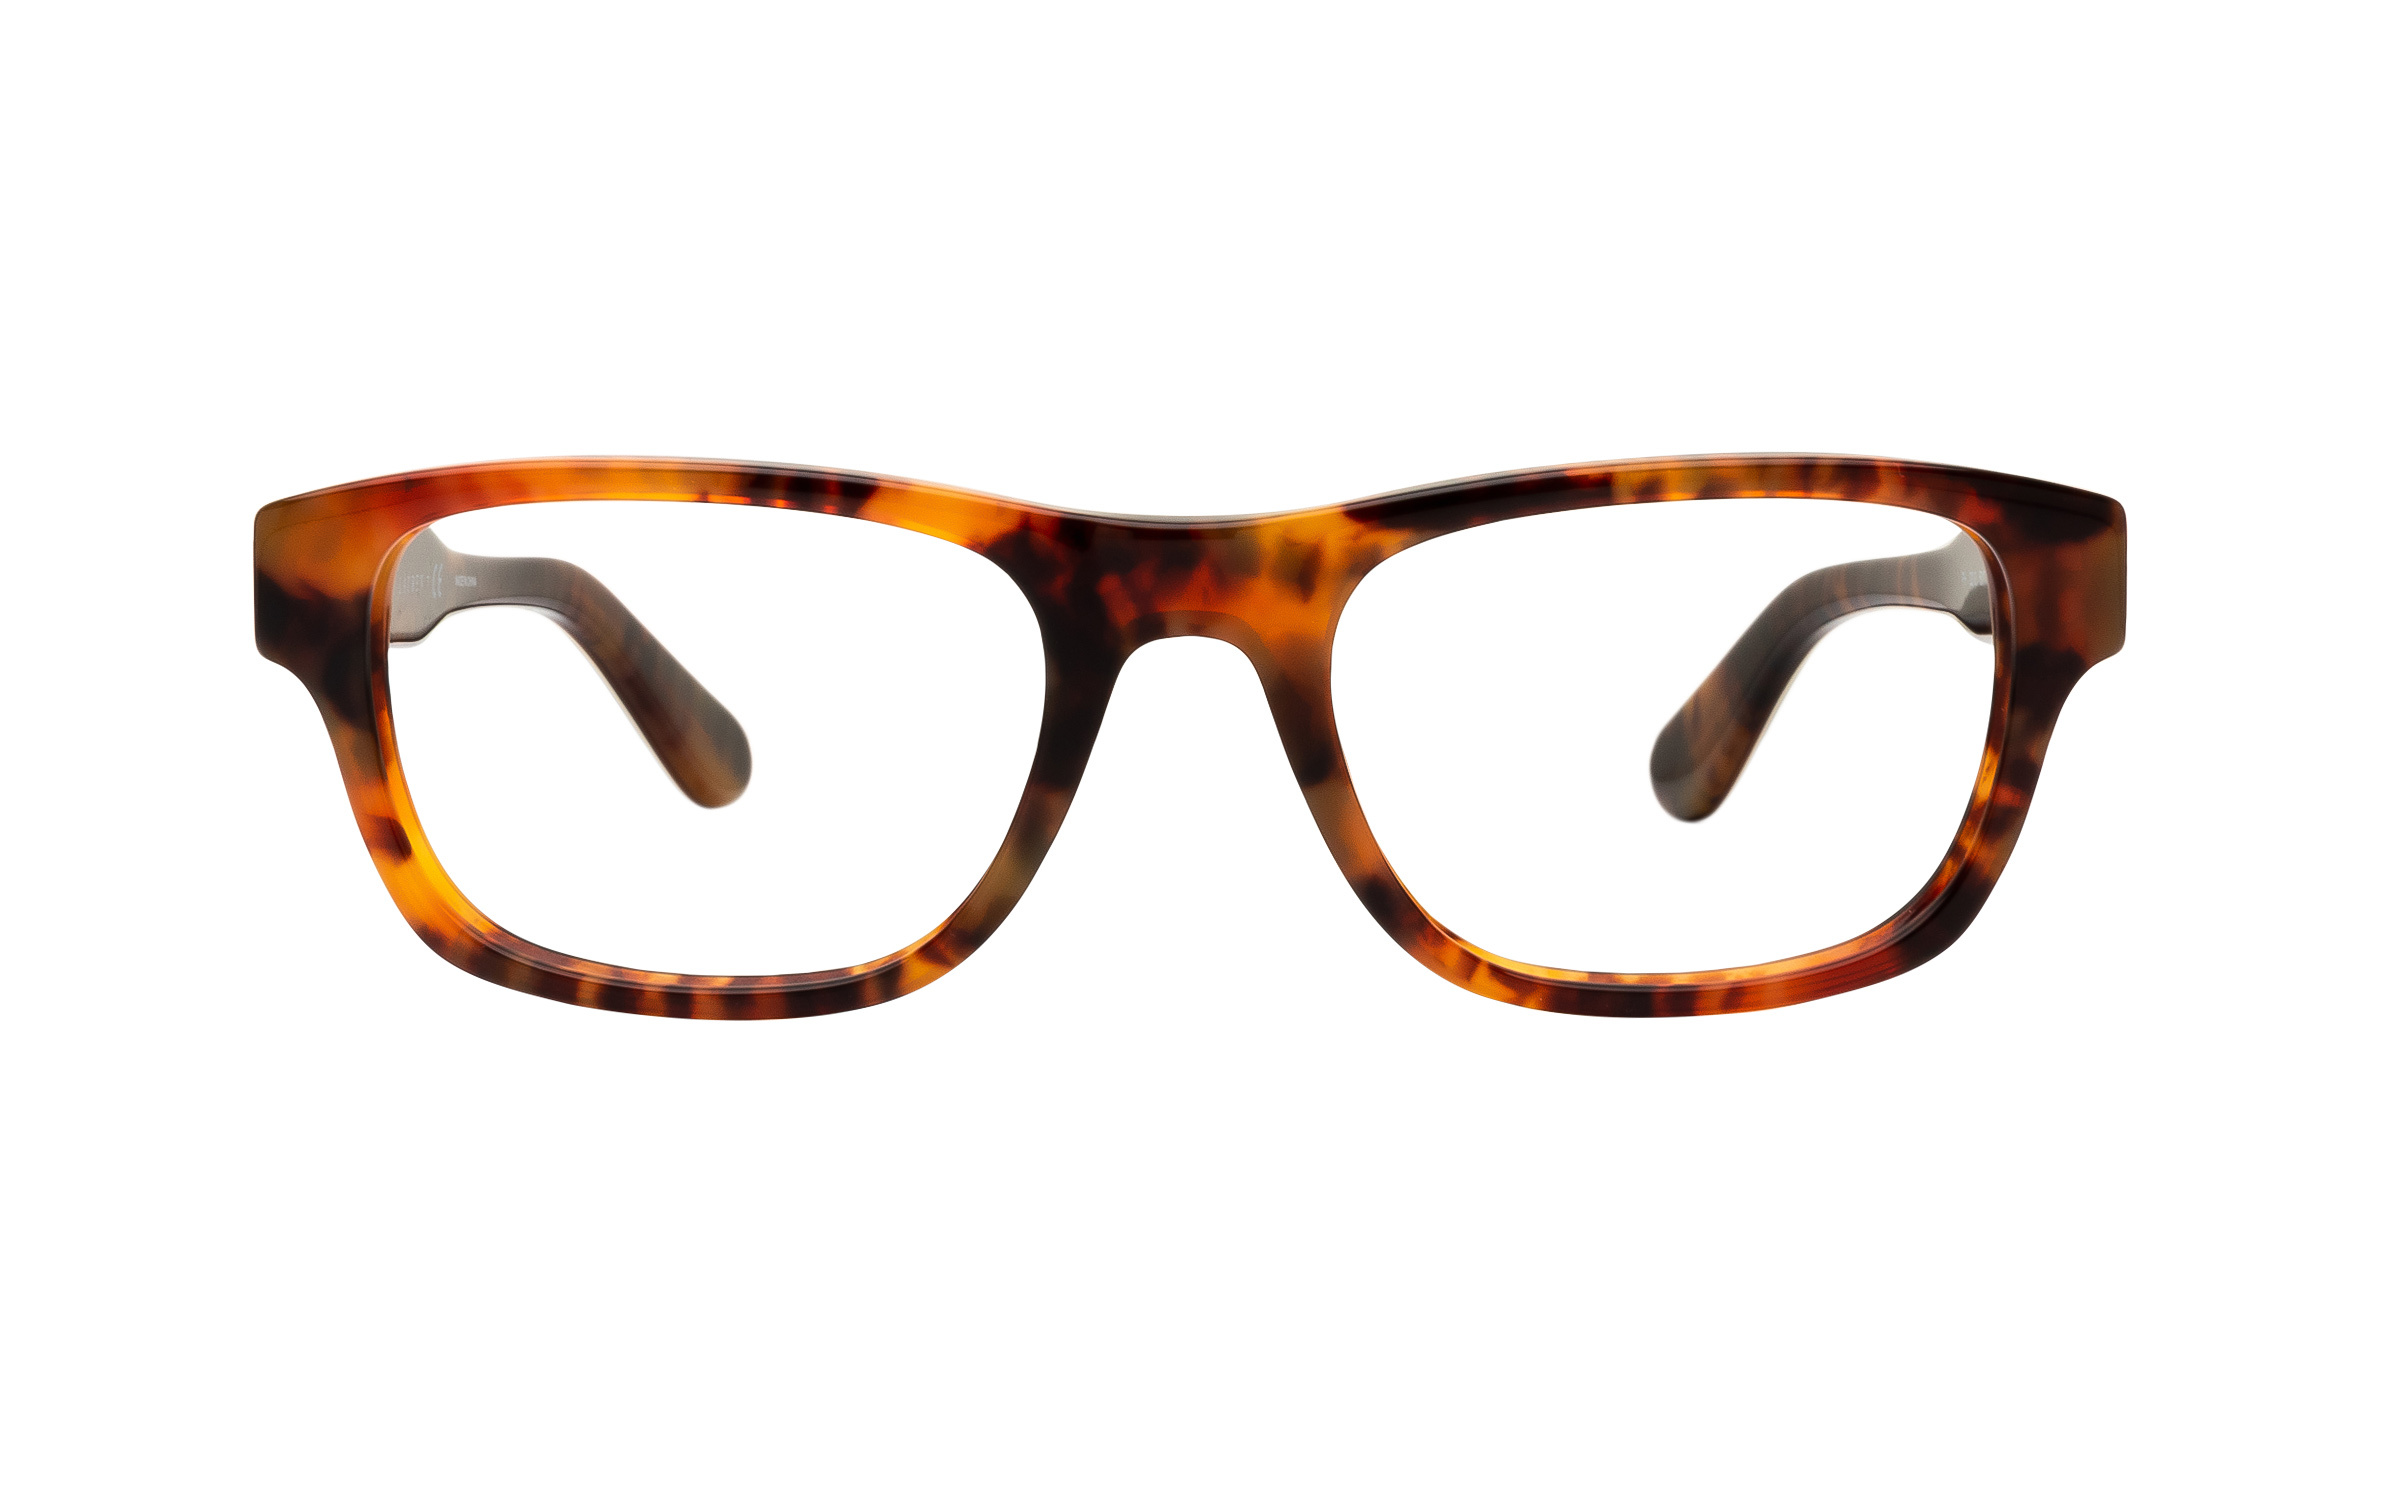 ClearlyBasics Polo PH2213 5017 (51) Eyeglasses and Frame in Jerry Tortoise | Acetate - Online Coastal